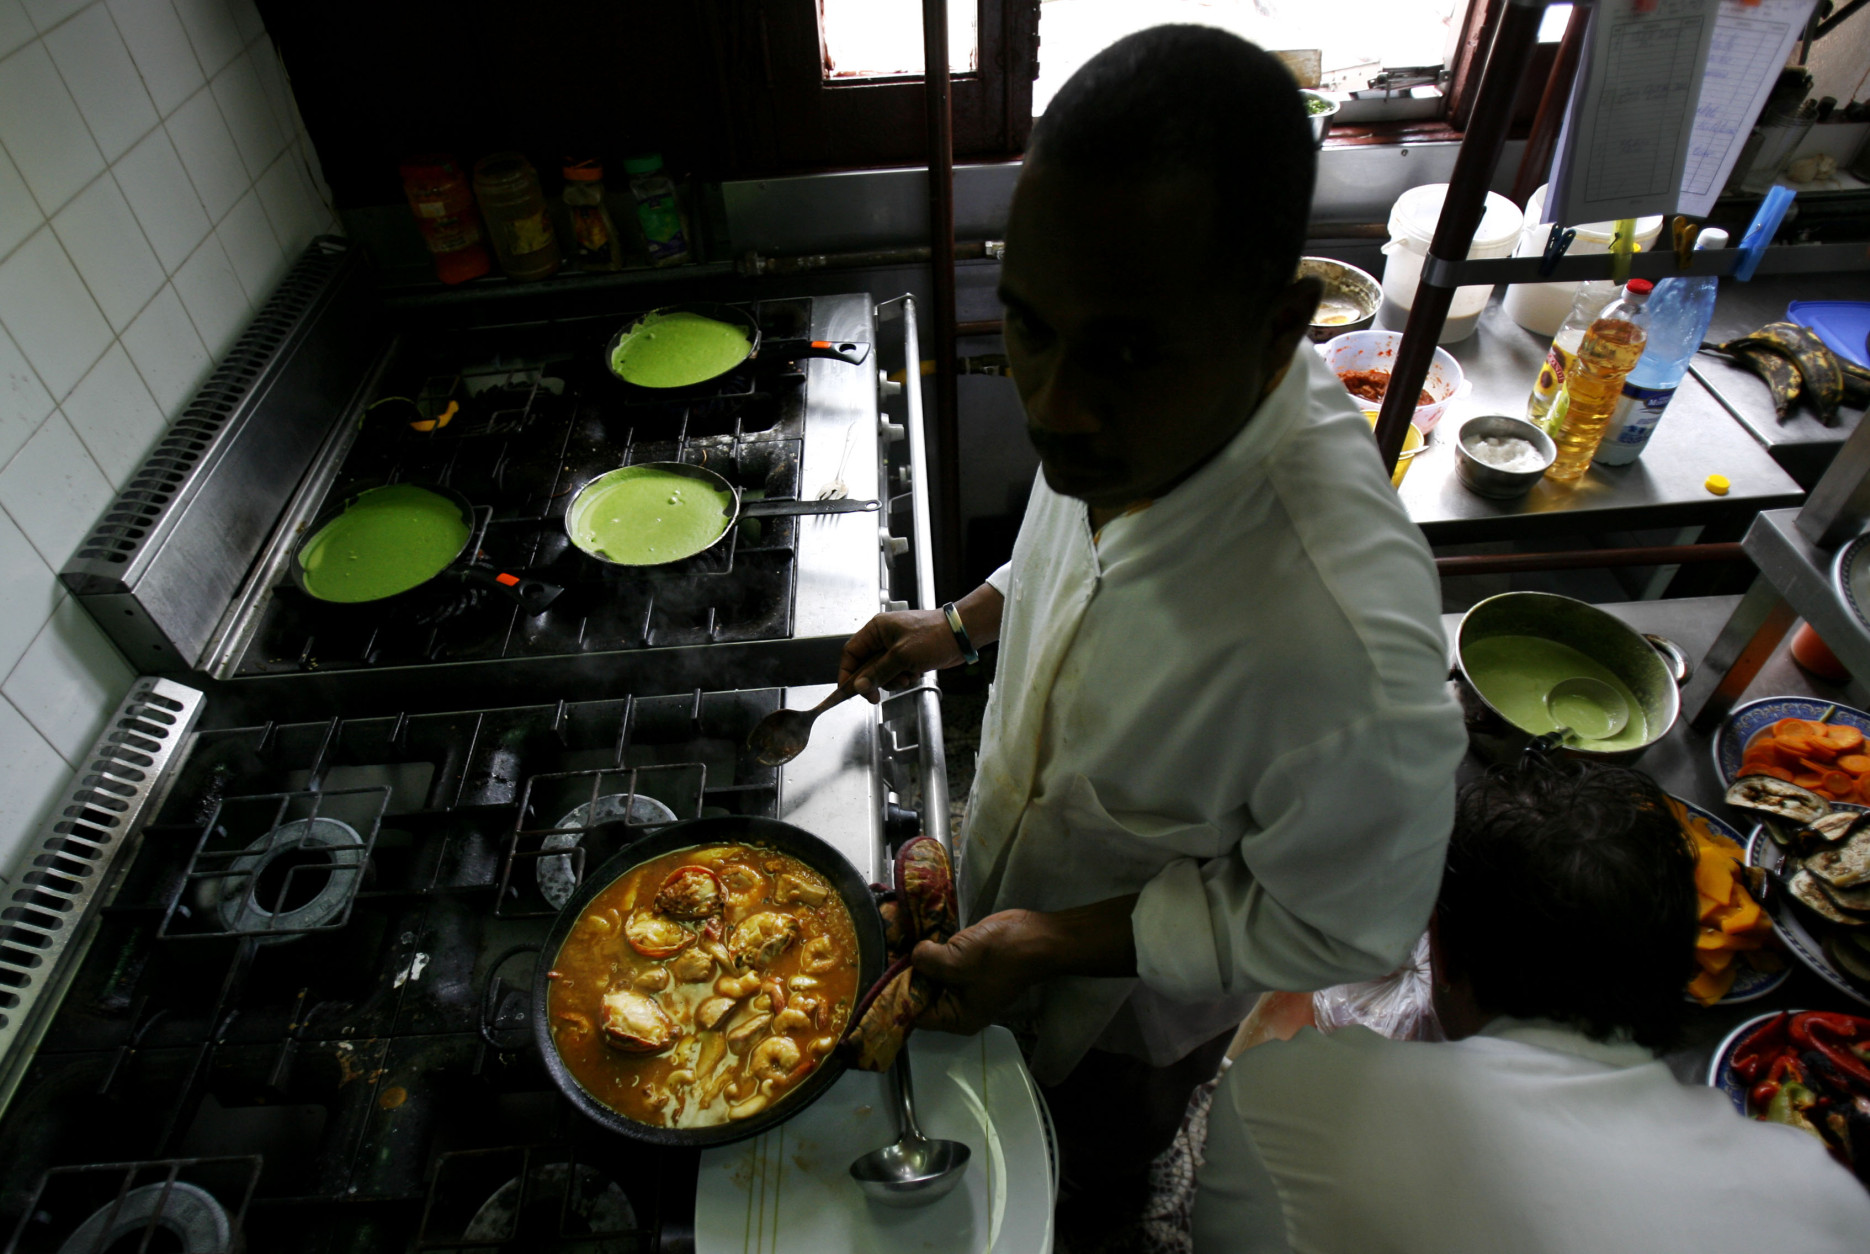 ** FOR STORY SLUGGED CUBA PALADARES **   A Cuban chef cooks paella in La Guarida, Havana's best known paladar, or private restaurant in Havana, Monday, March 10, 2008. (AP Photo/Javier Galeano)